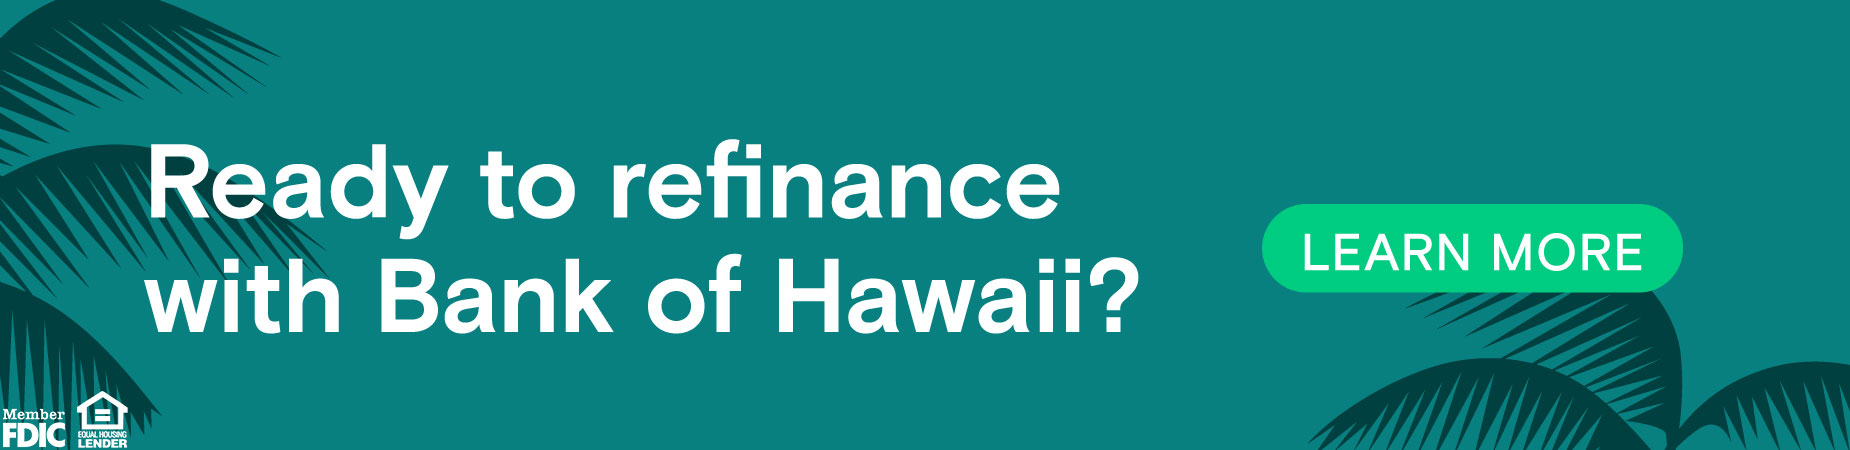 Ready to refinance with Bank of Hawaii?